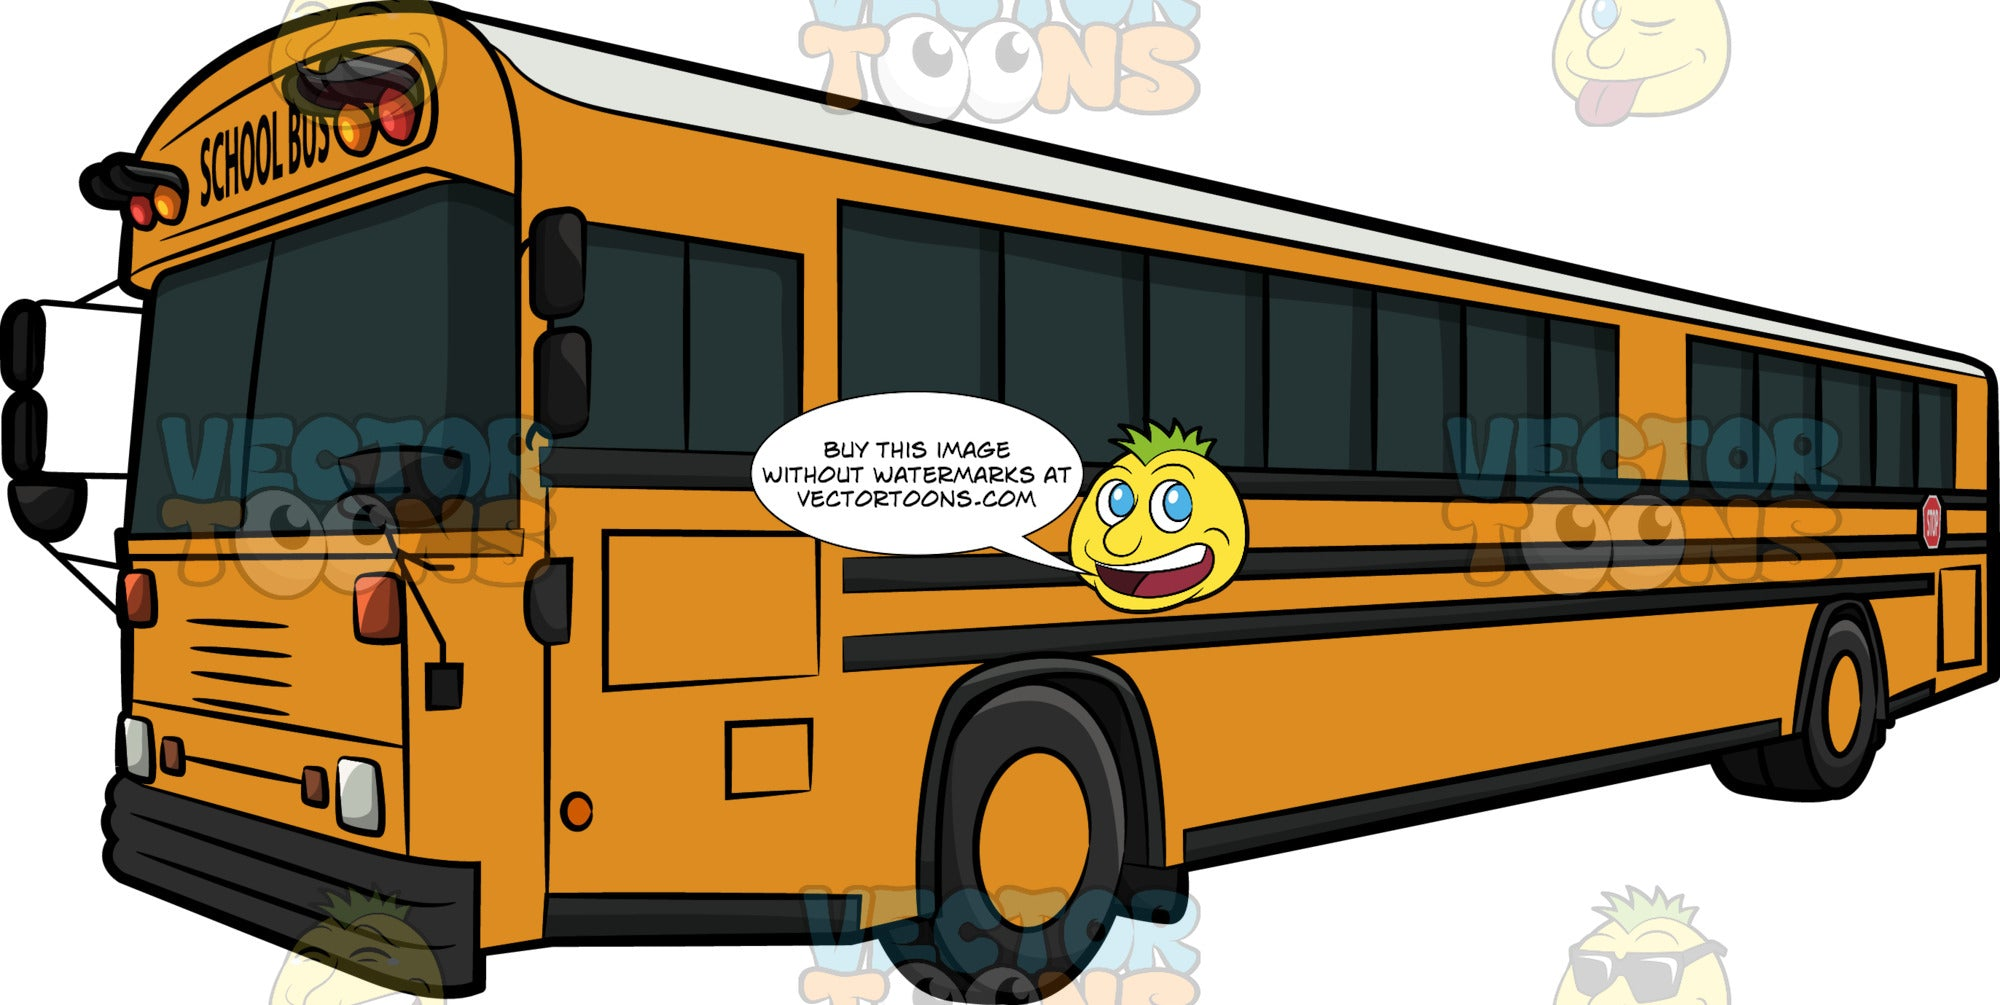 An Air Conditioned School Bus